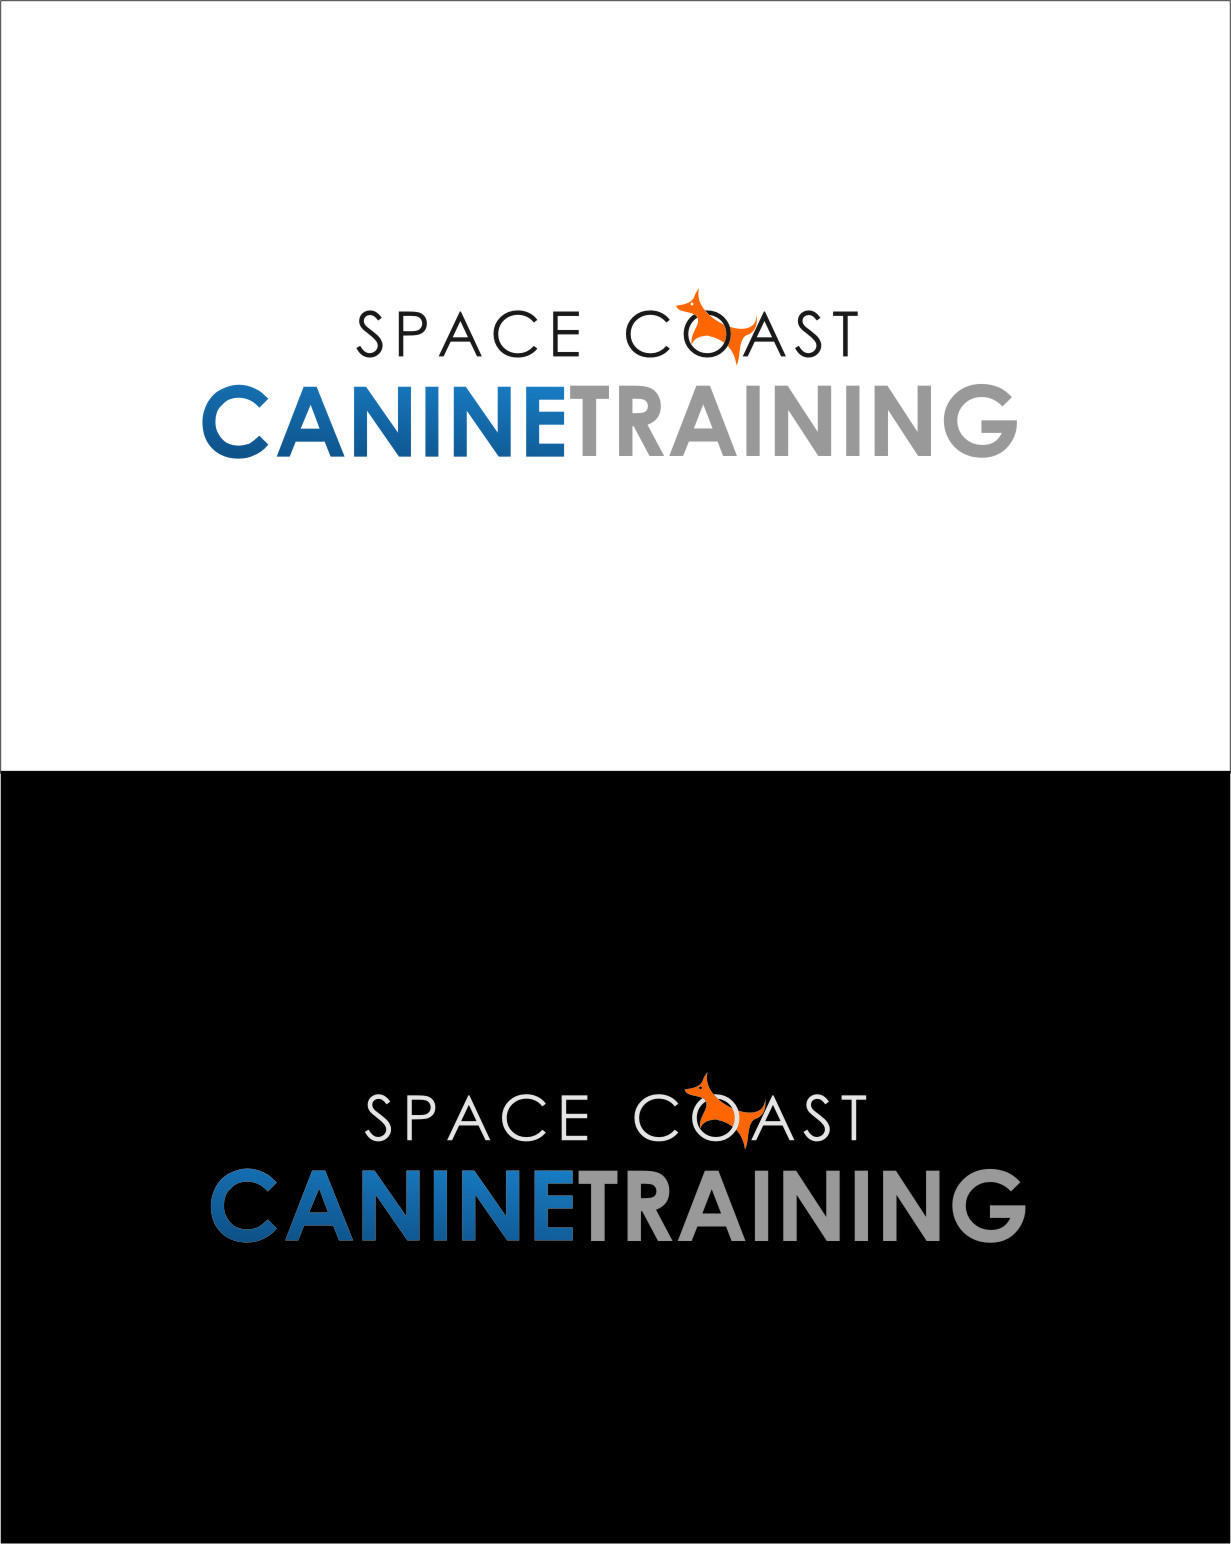 Logo Design by Ngepet_art - Entry No. 84 in the Logo Design Contest Creative Logo Design for Space Coast Canine Training.